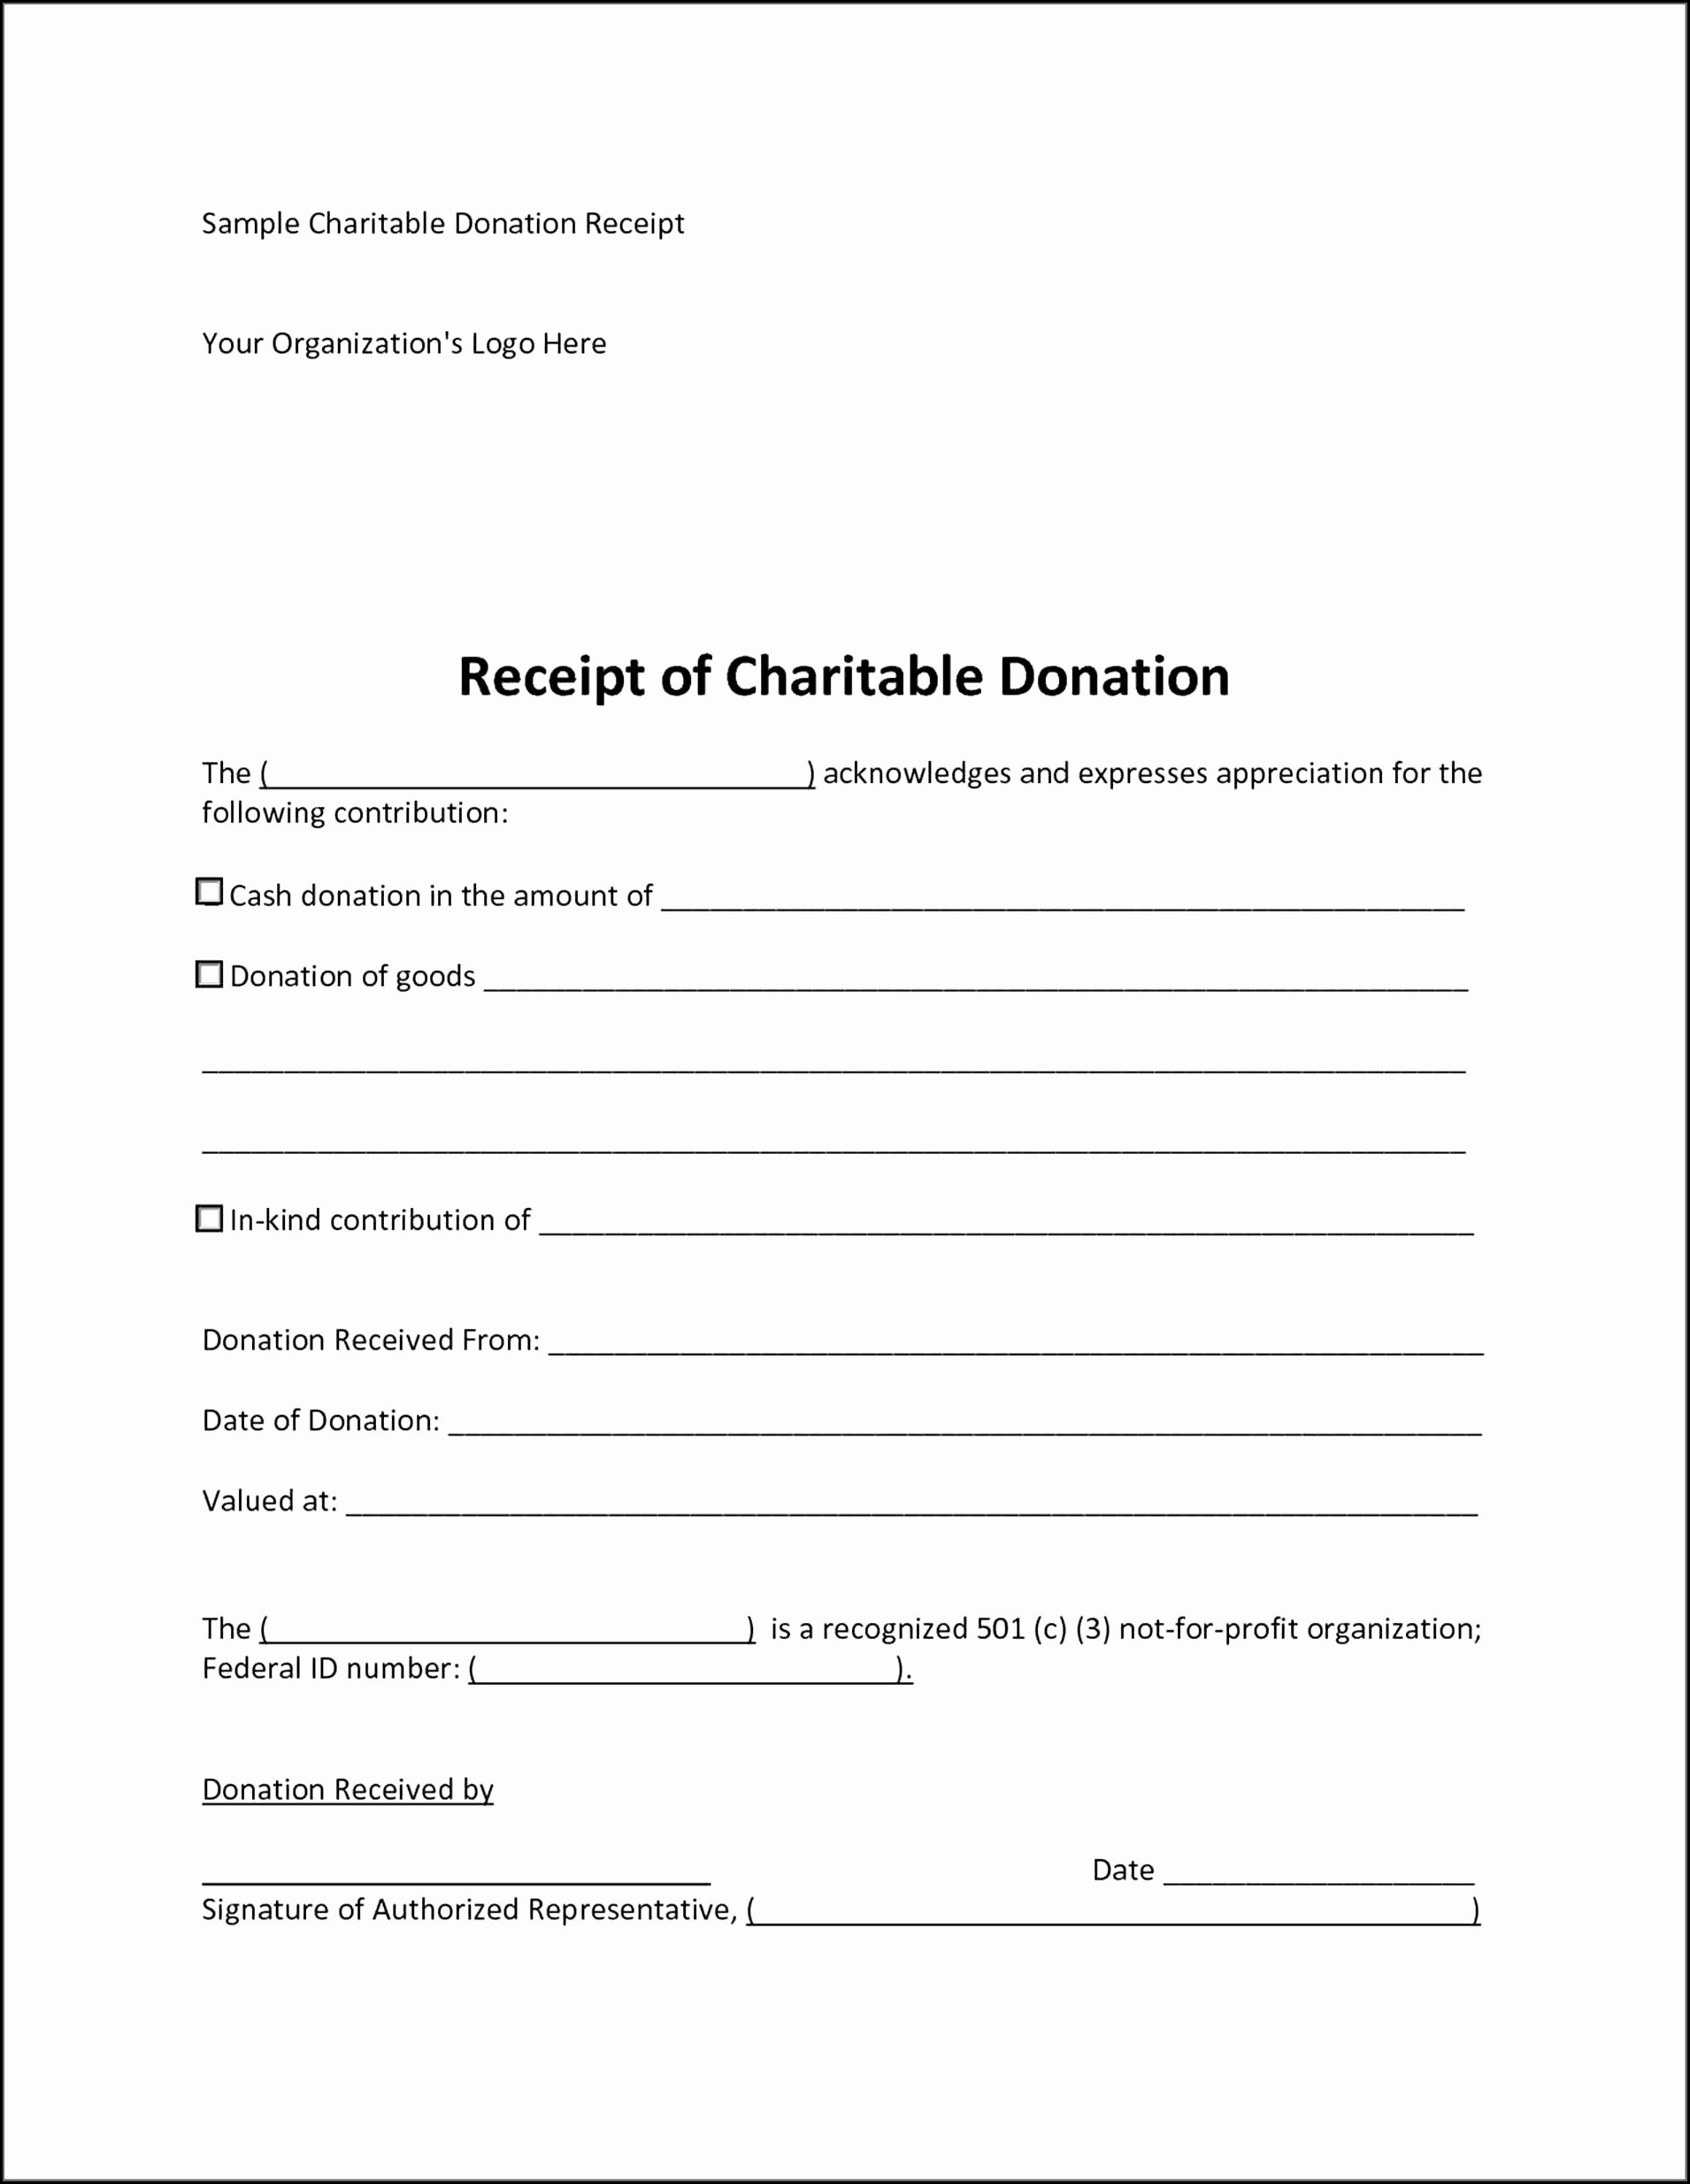 Tax Deduction Worksheet For Teachers